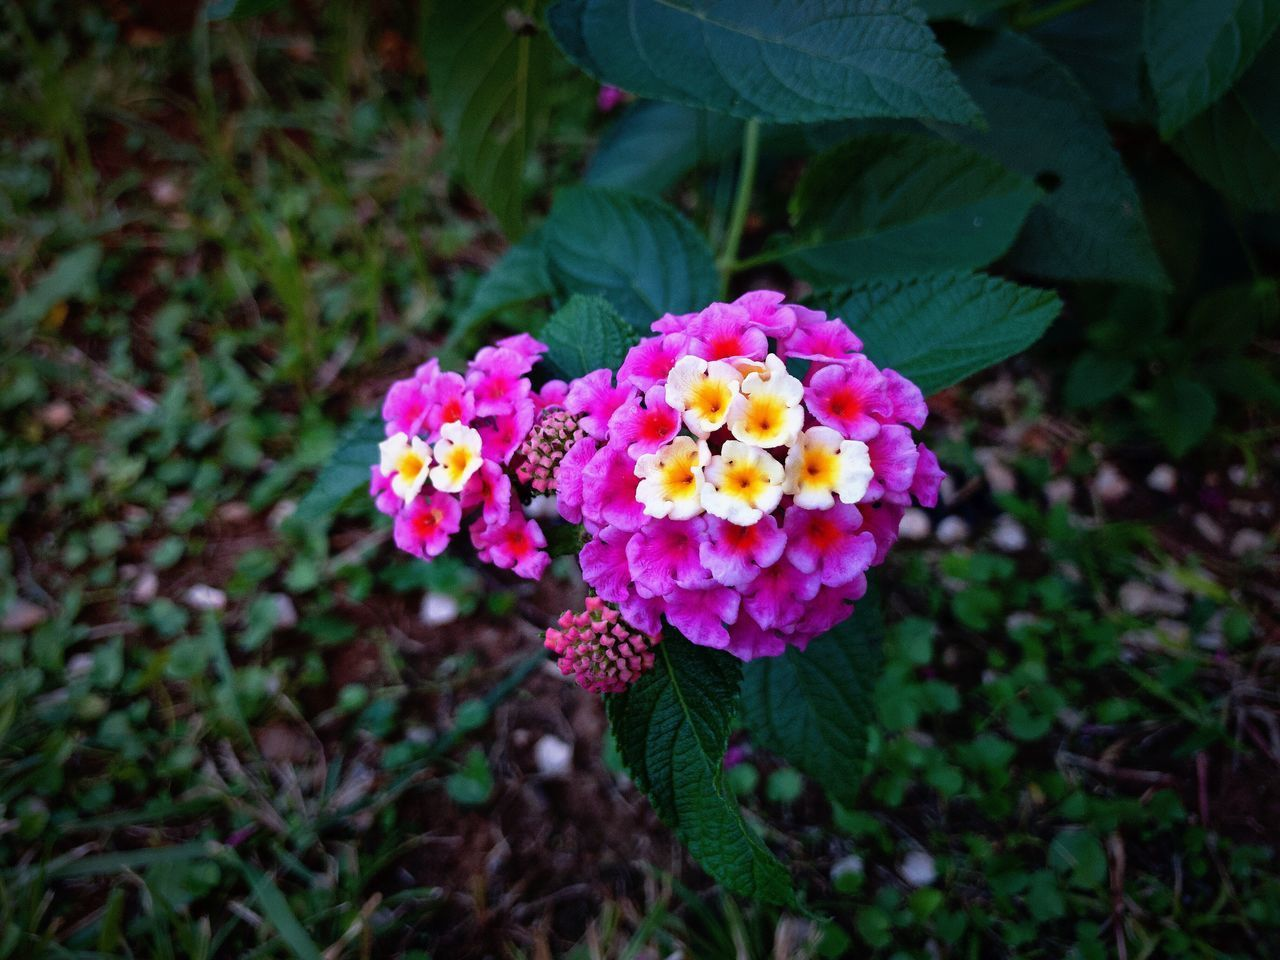 flowering plant, flower, plant, fragility, vulnerability, beauty in nature, freshness, petal, flower head, lantana, inflorescence, growth, close-up, nature, day, plant part, leaf, high angle view, pink color, focus on foreground, outdoors, bunch of flowers